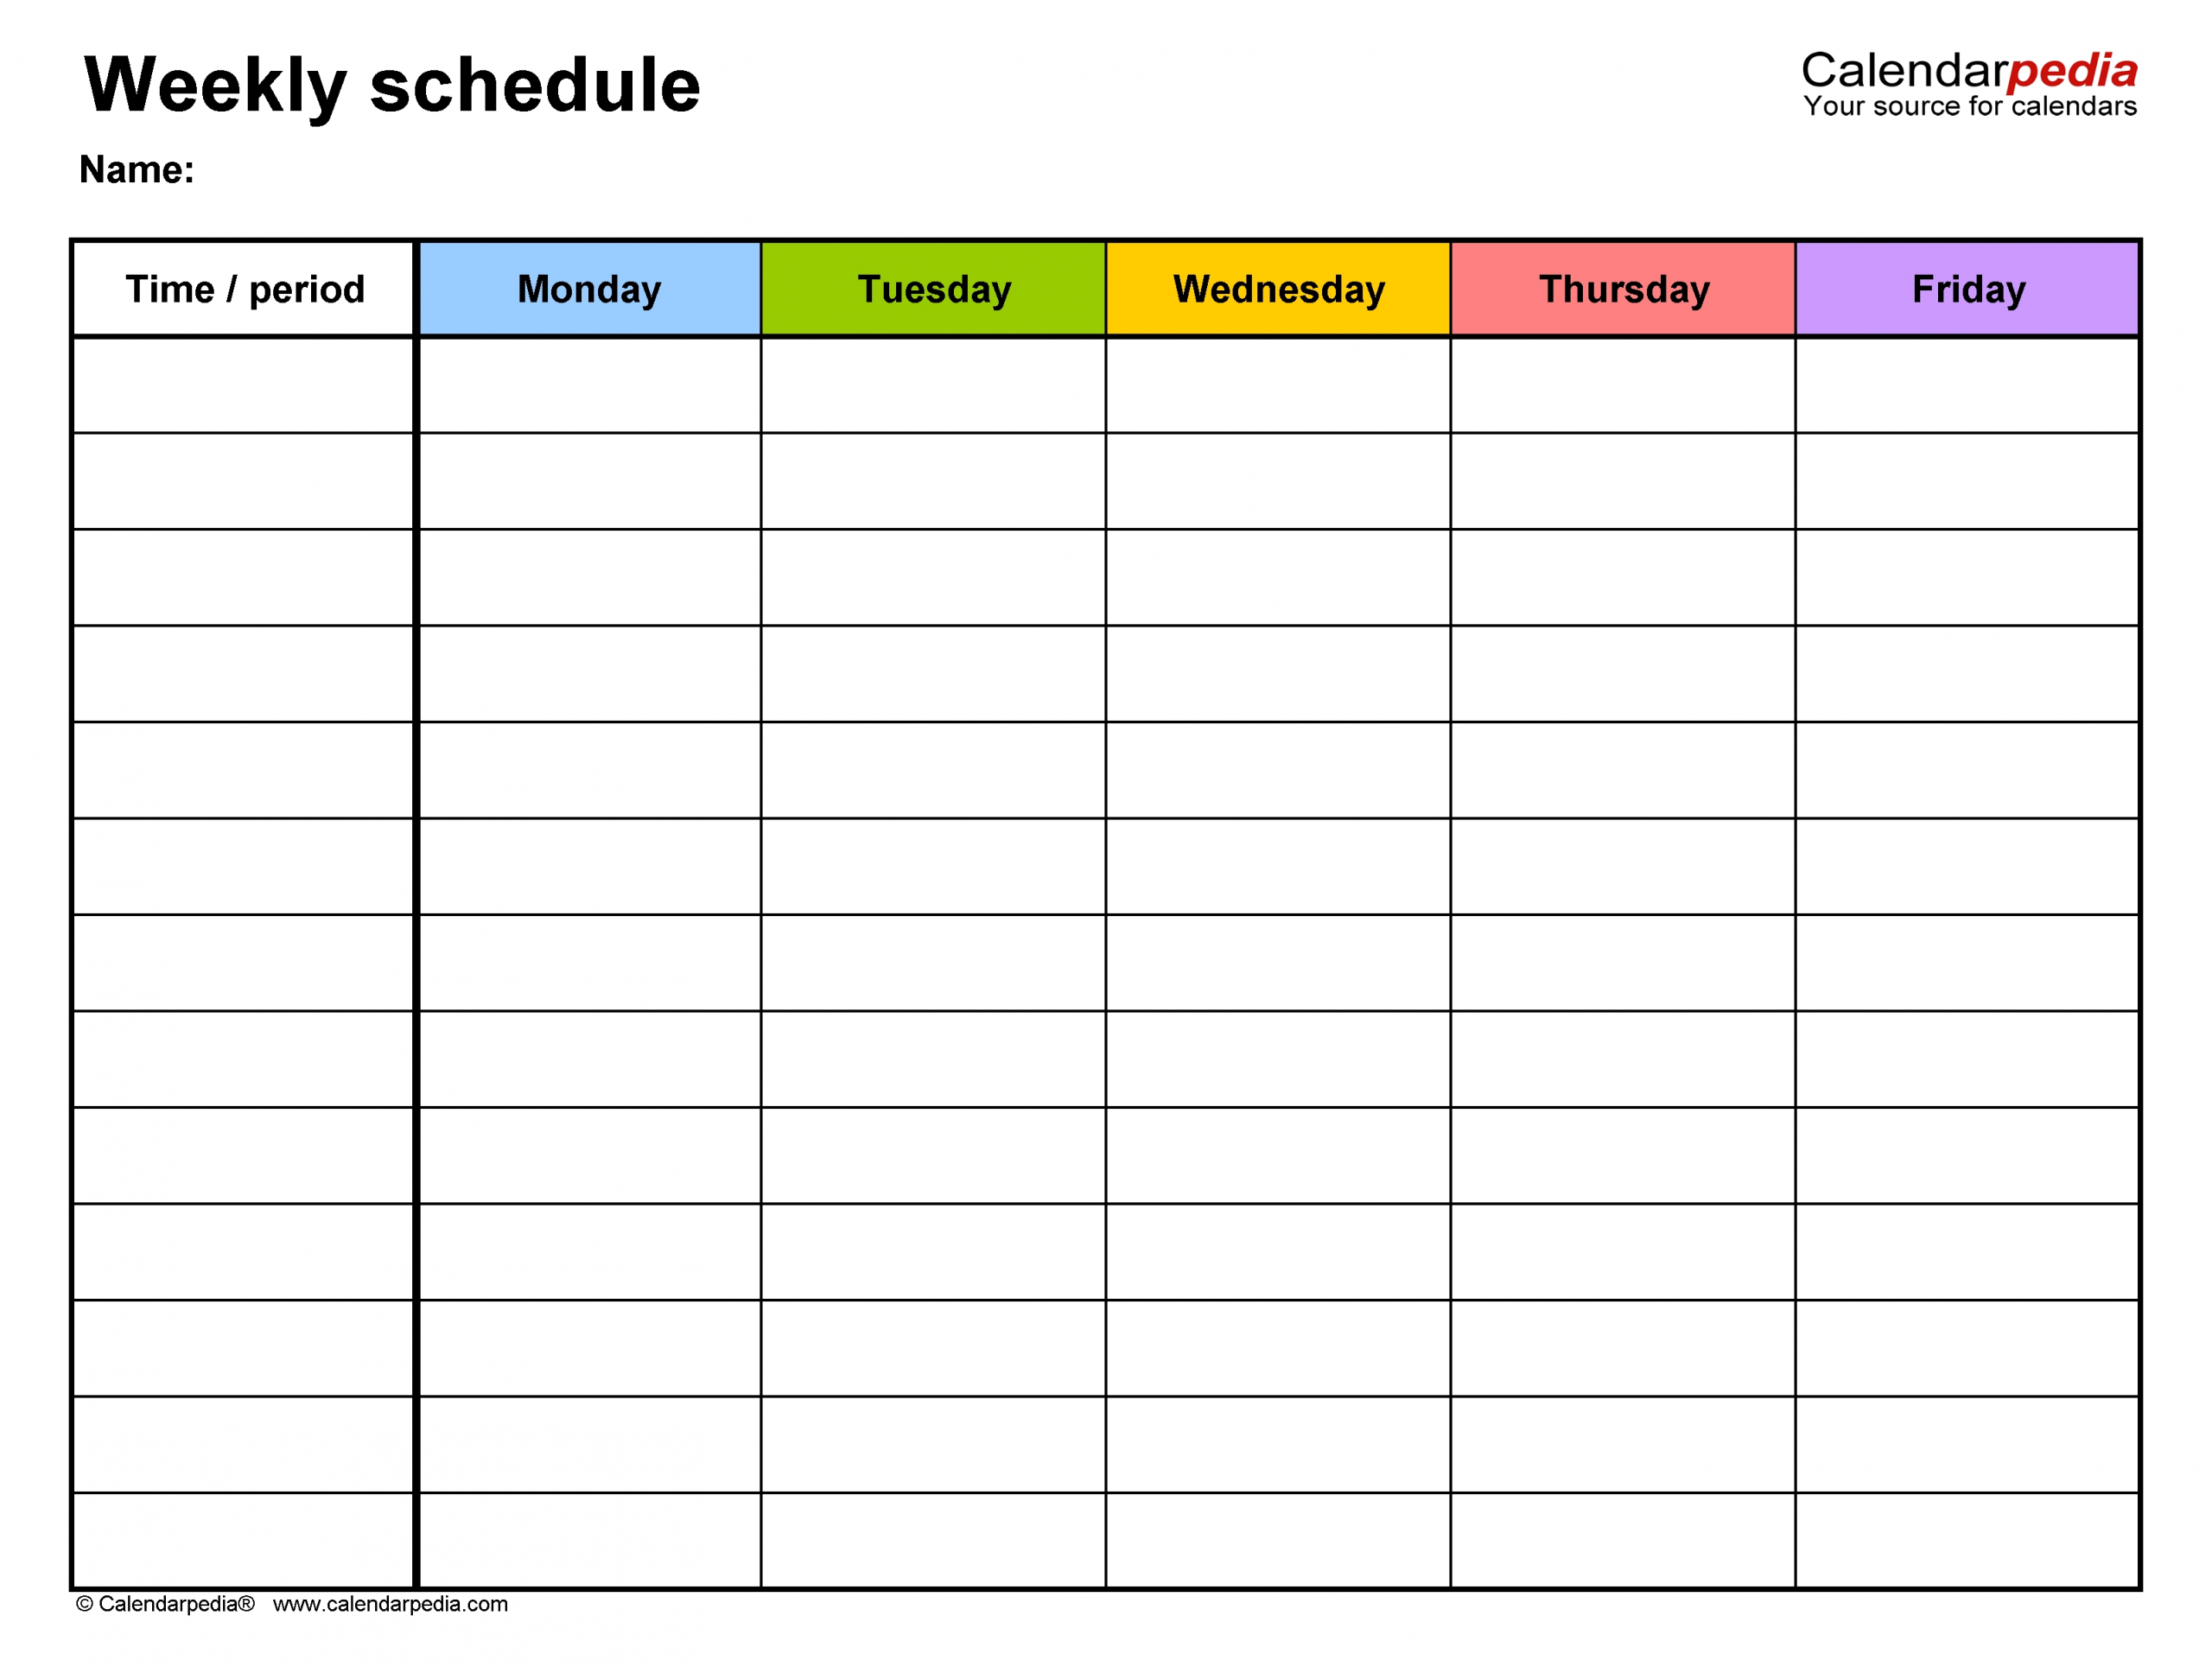 Free Weekly Schedule Templates For Excel - 18 Templates  Excel Calendar Week